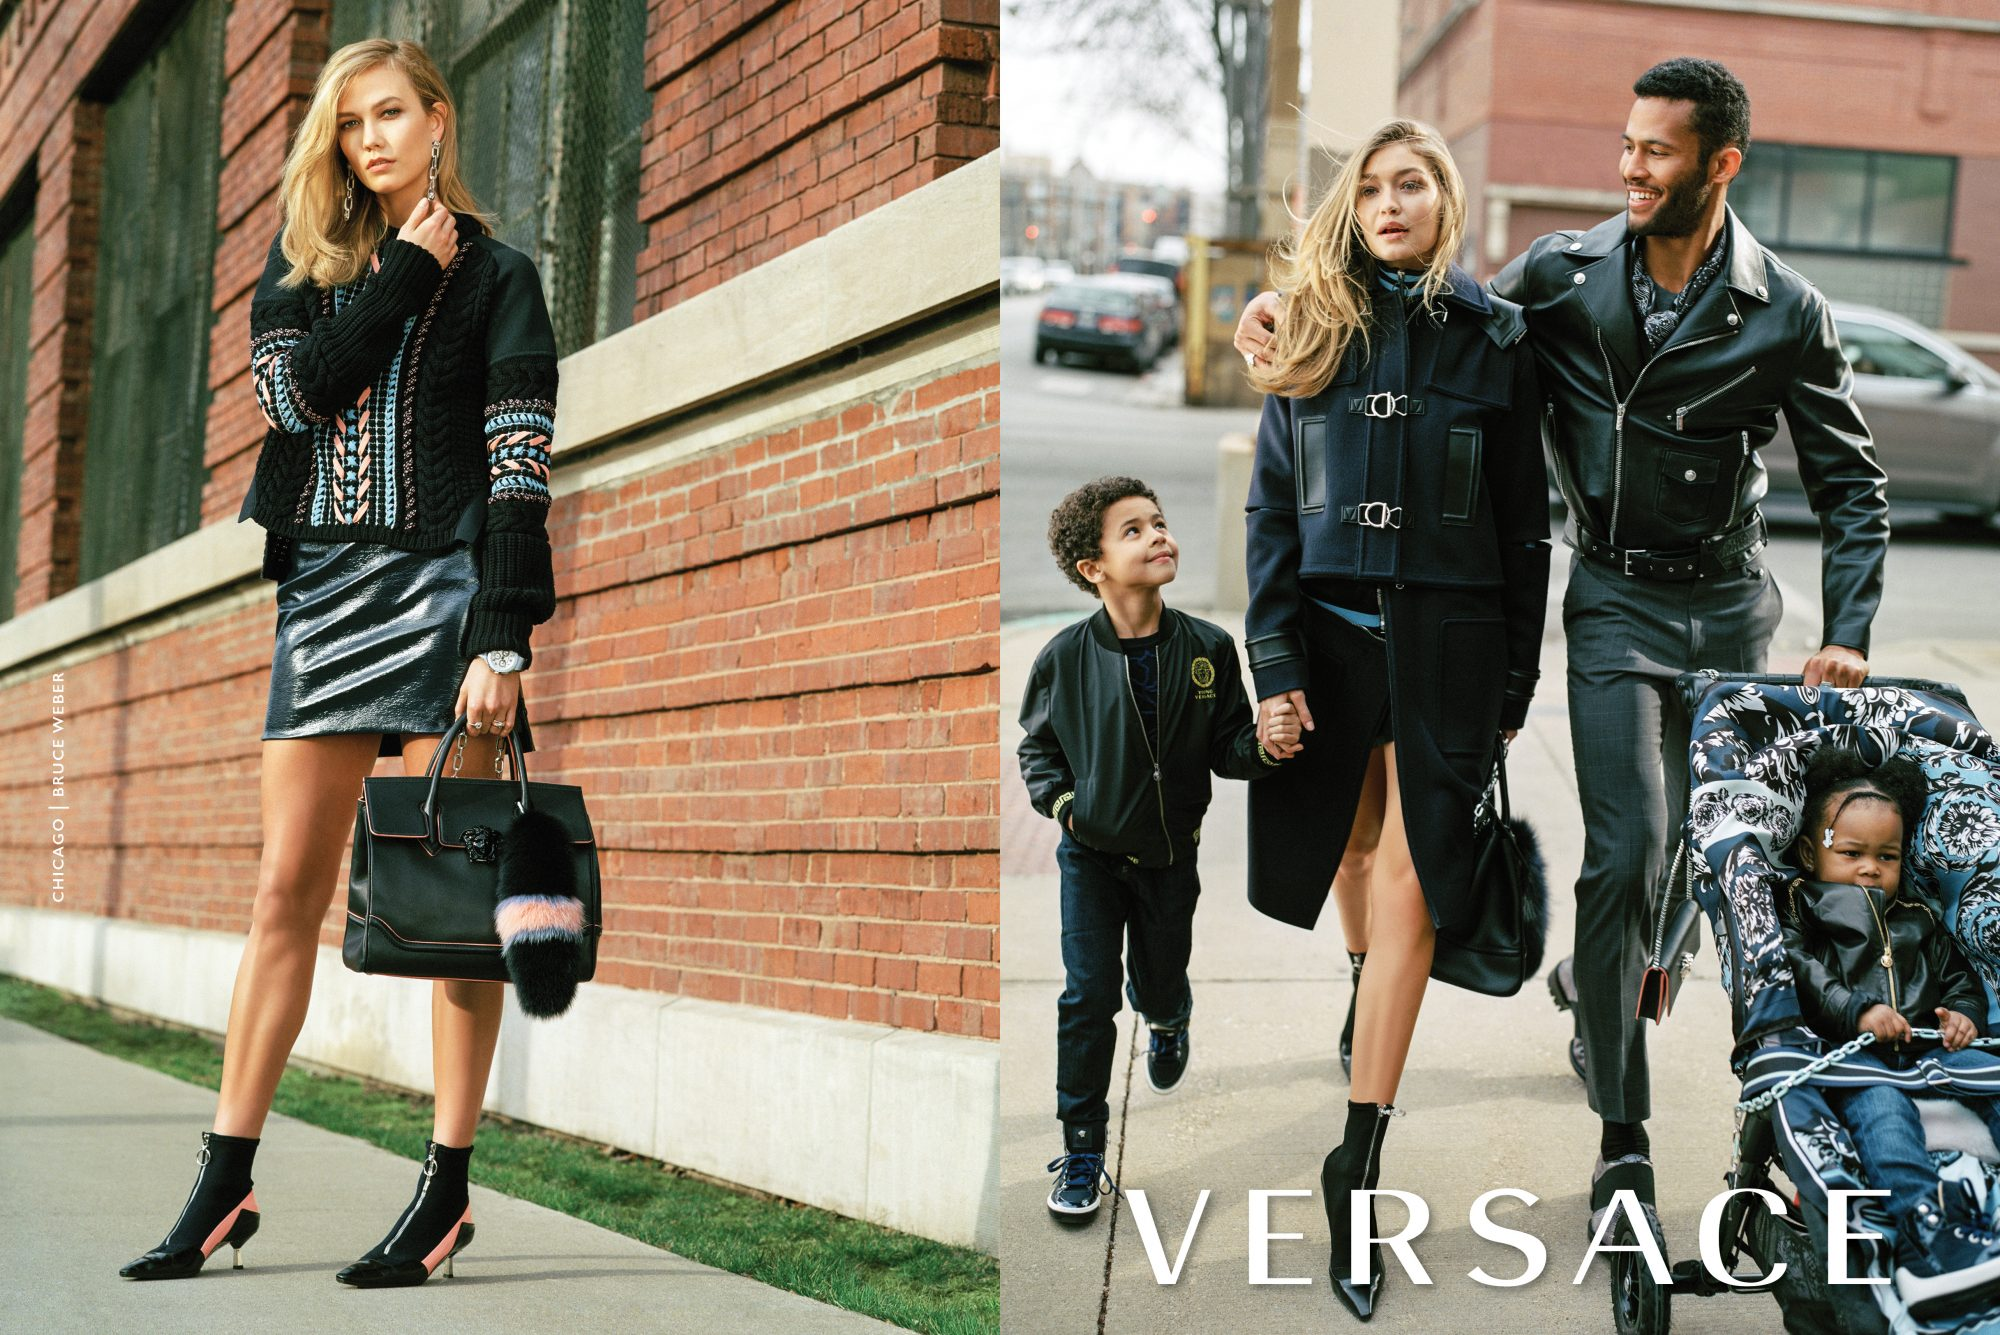 Versace Campaign LEAD